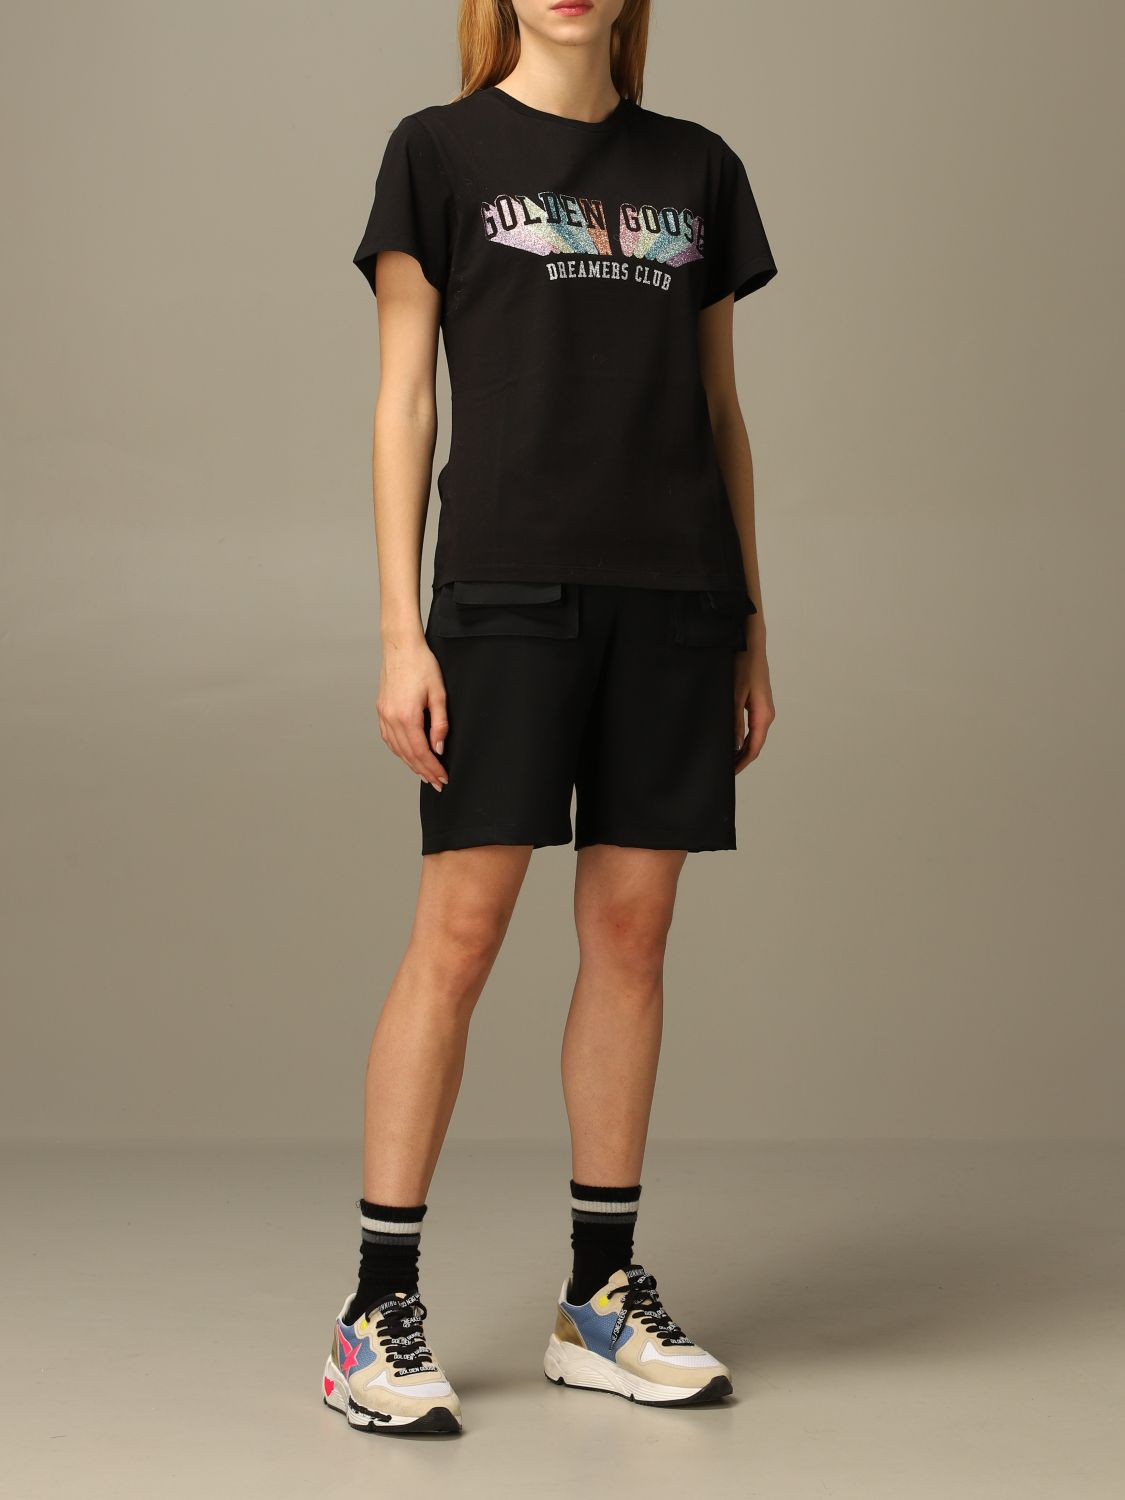 T-Shirt Golden Goose: T-shirt damen Golden Goose schwarz 2